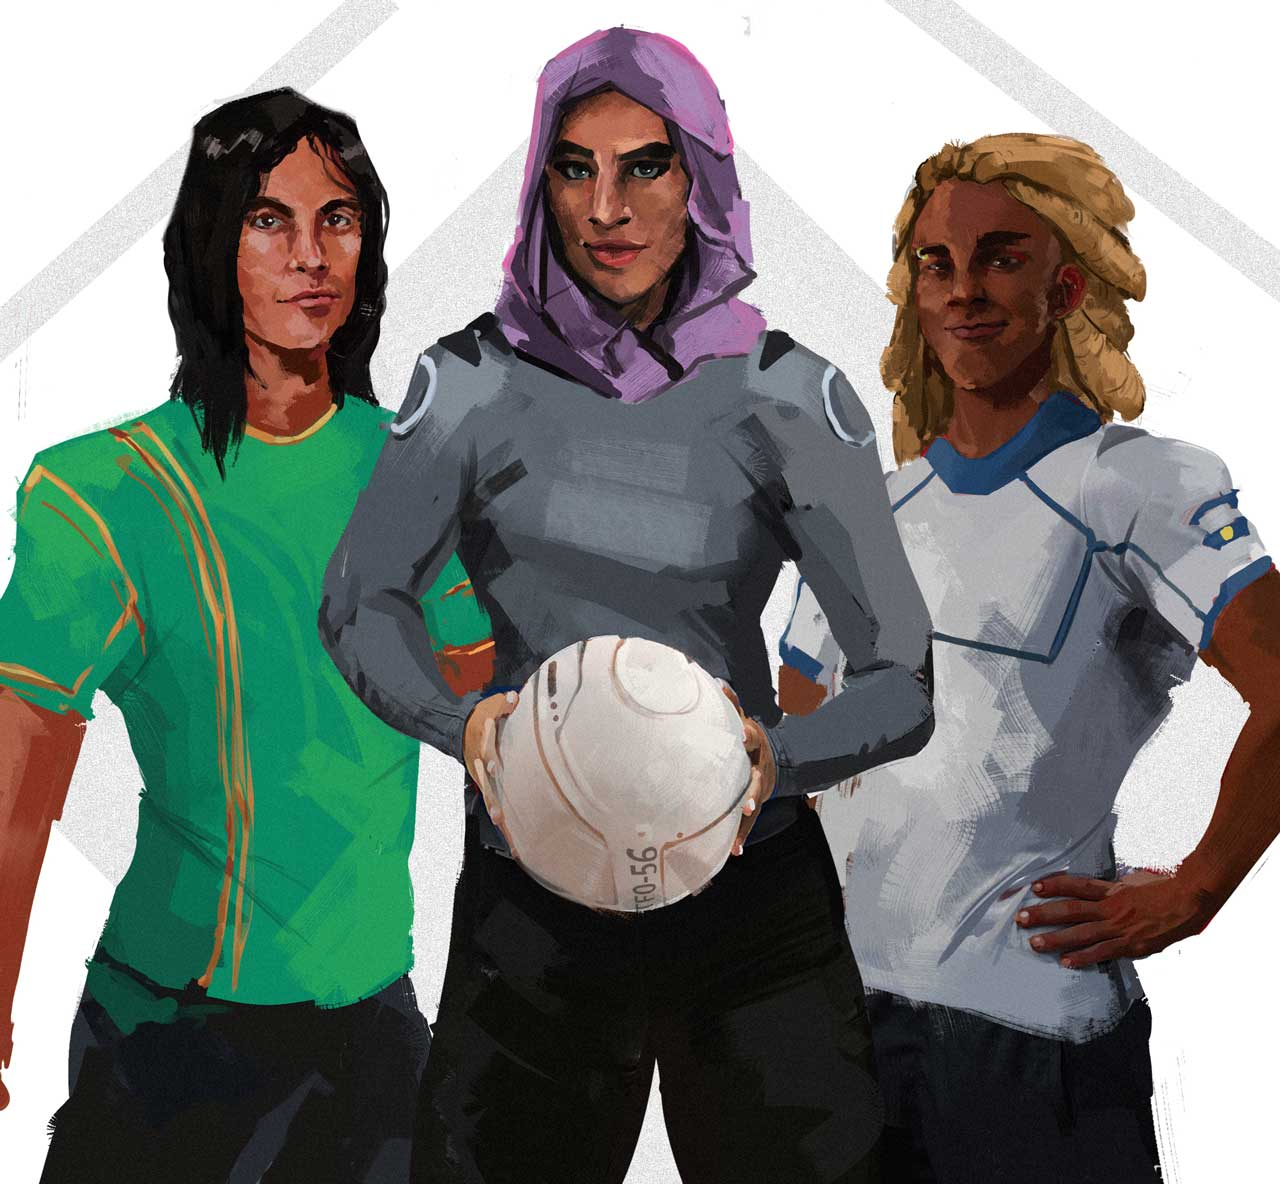 From left to right: Uday Lanka (#7 Immortals Captain), Arwa Farra (#18 Al'amal SC), and Darkeem Dennis (#7 Europa United)